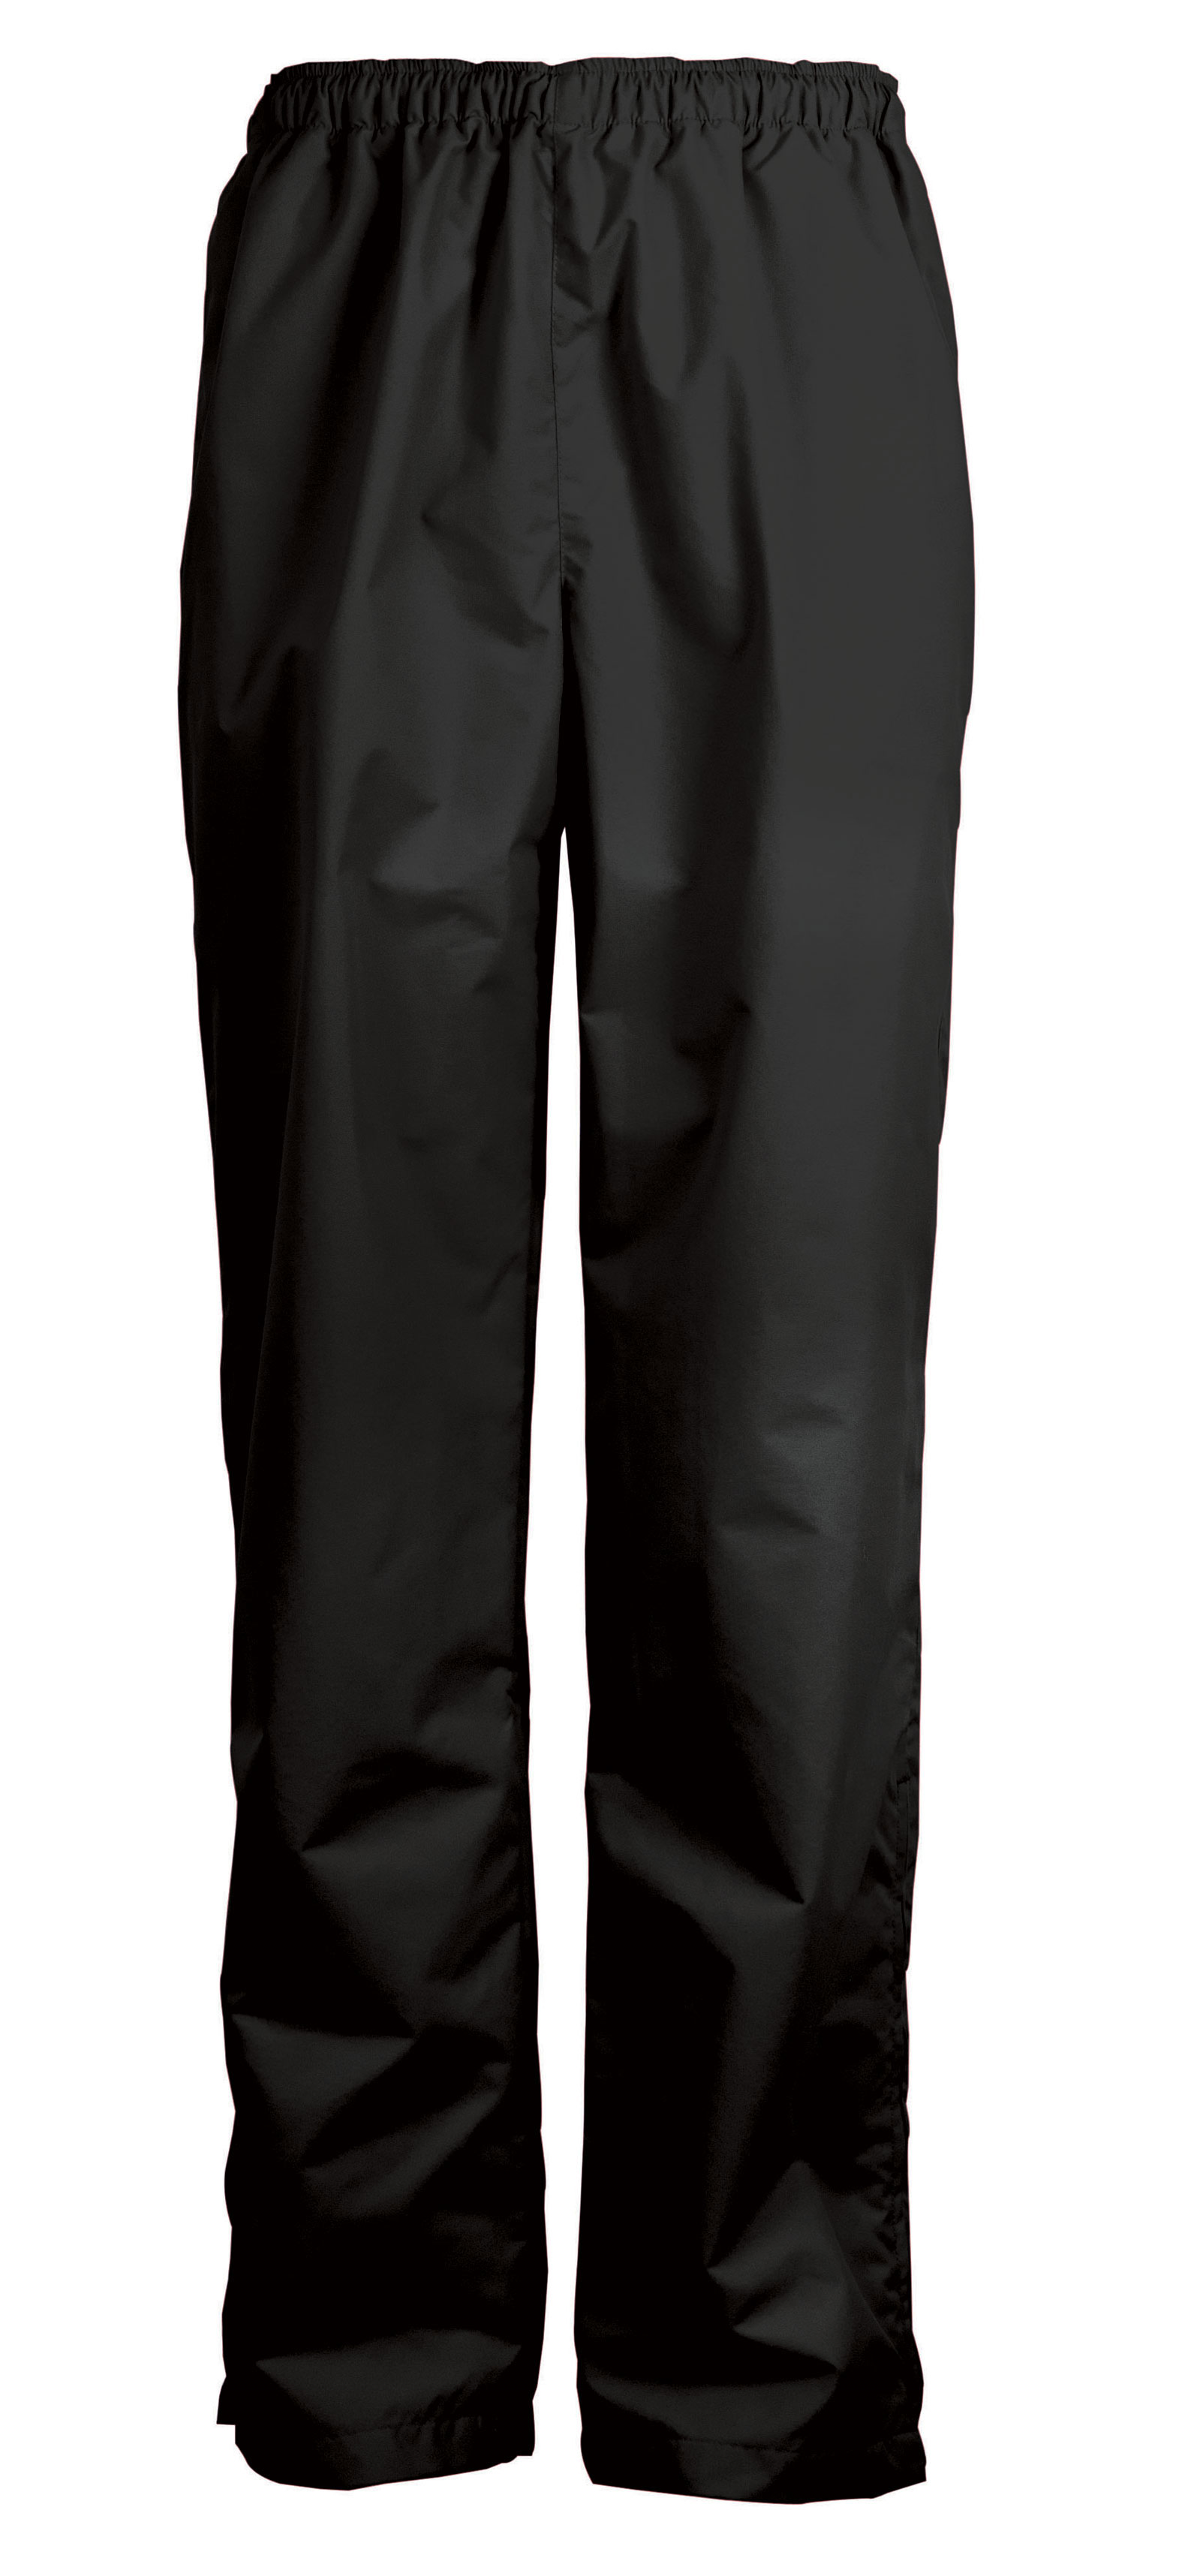 Youth Pivot Warm Up Pant by Charles River Apparel